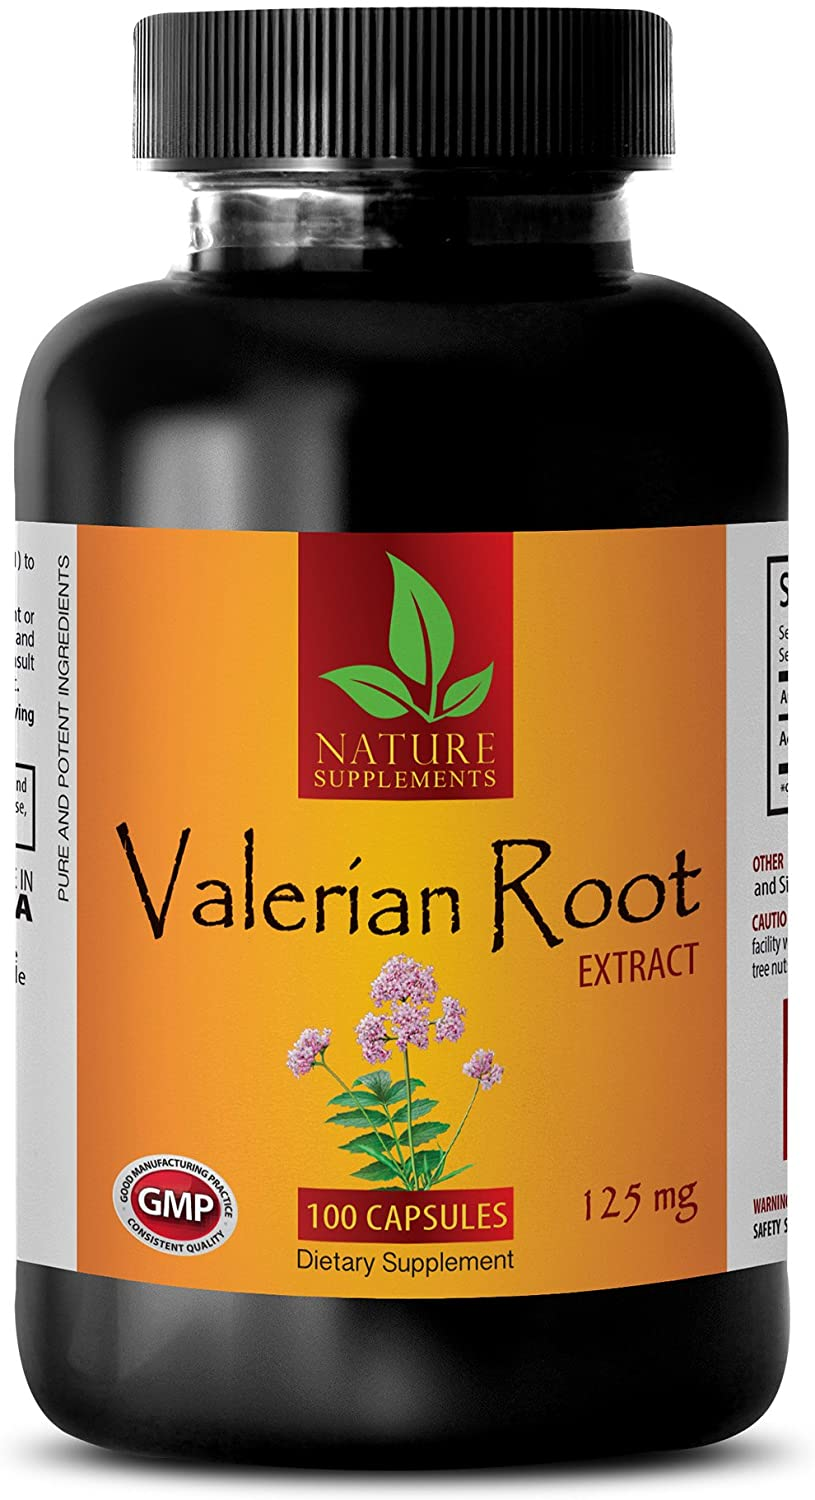 Blood Pressure Down - Valerian Root Extract 125 MG - Dietary Supplement - Valerian Capsules - 1 Bottle (100 Capsules)